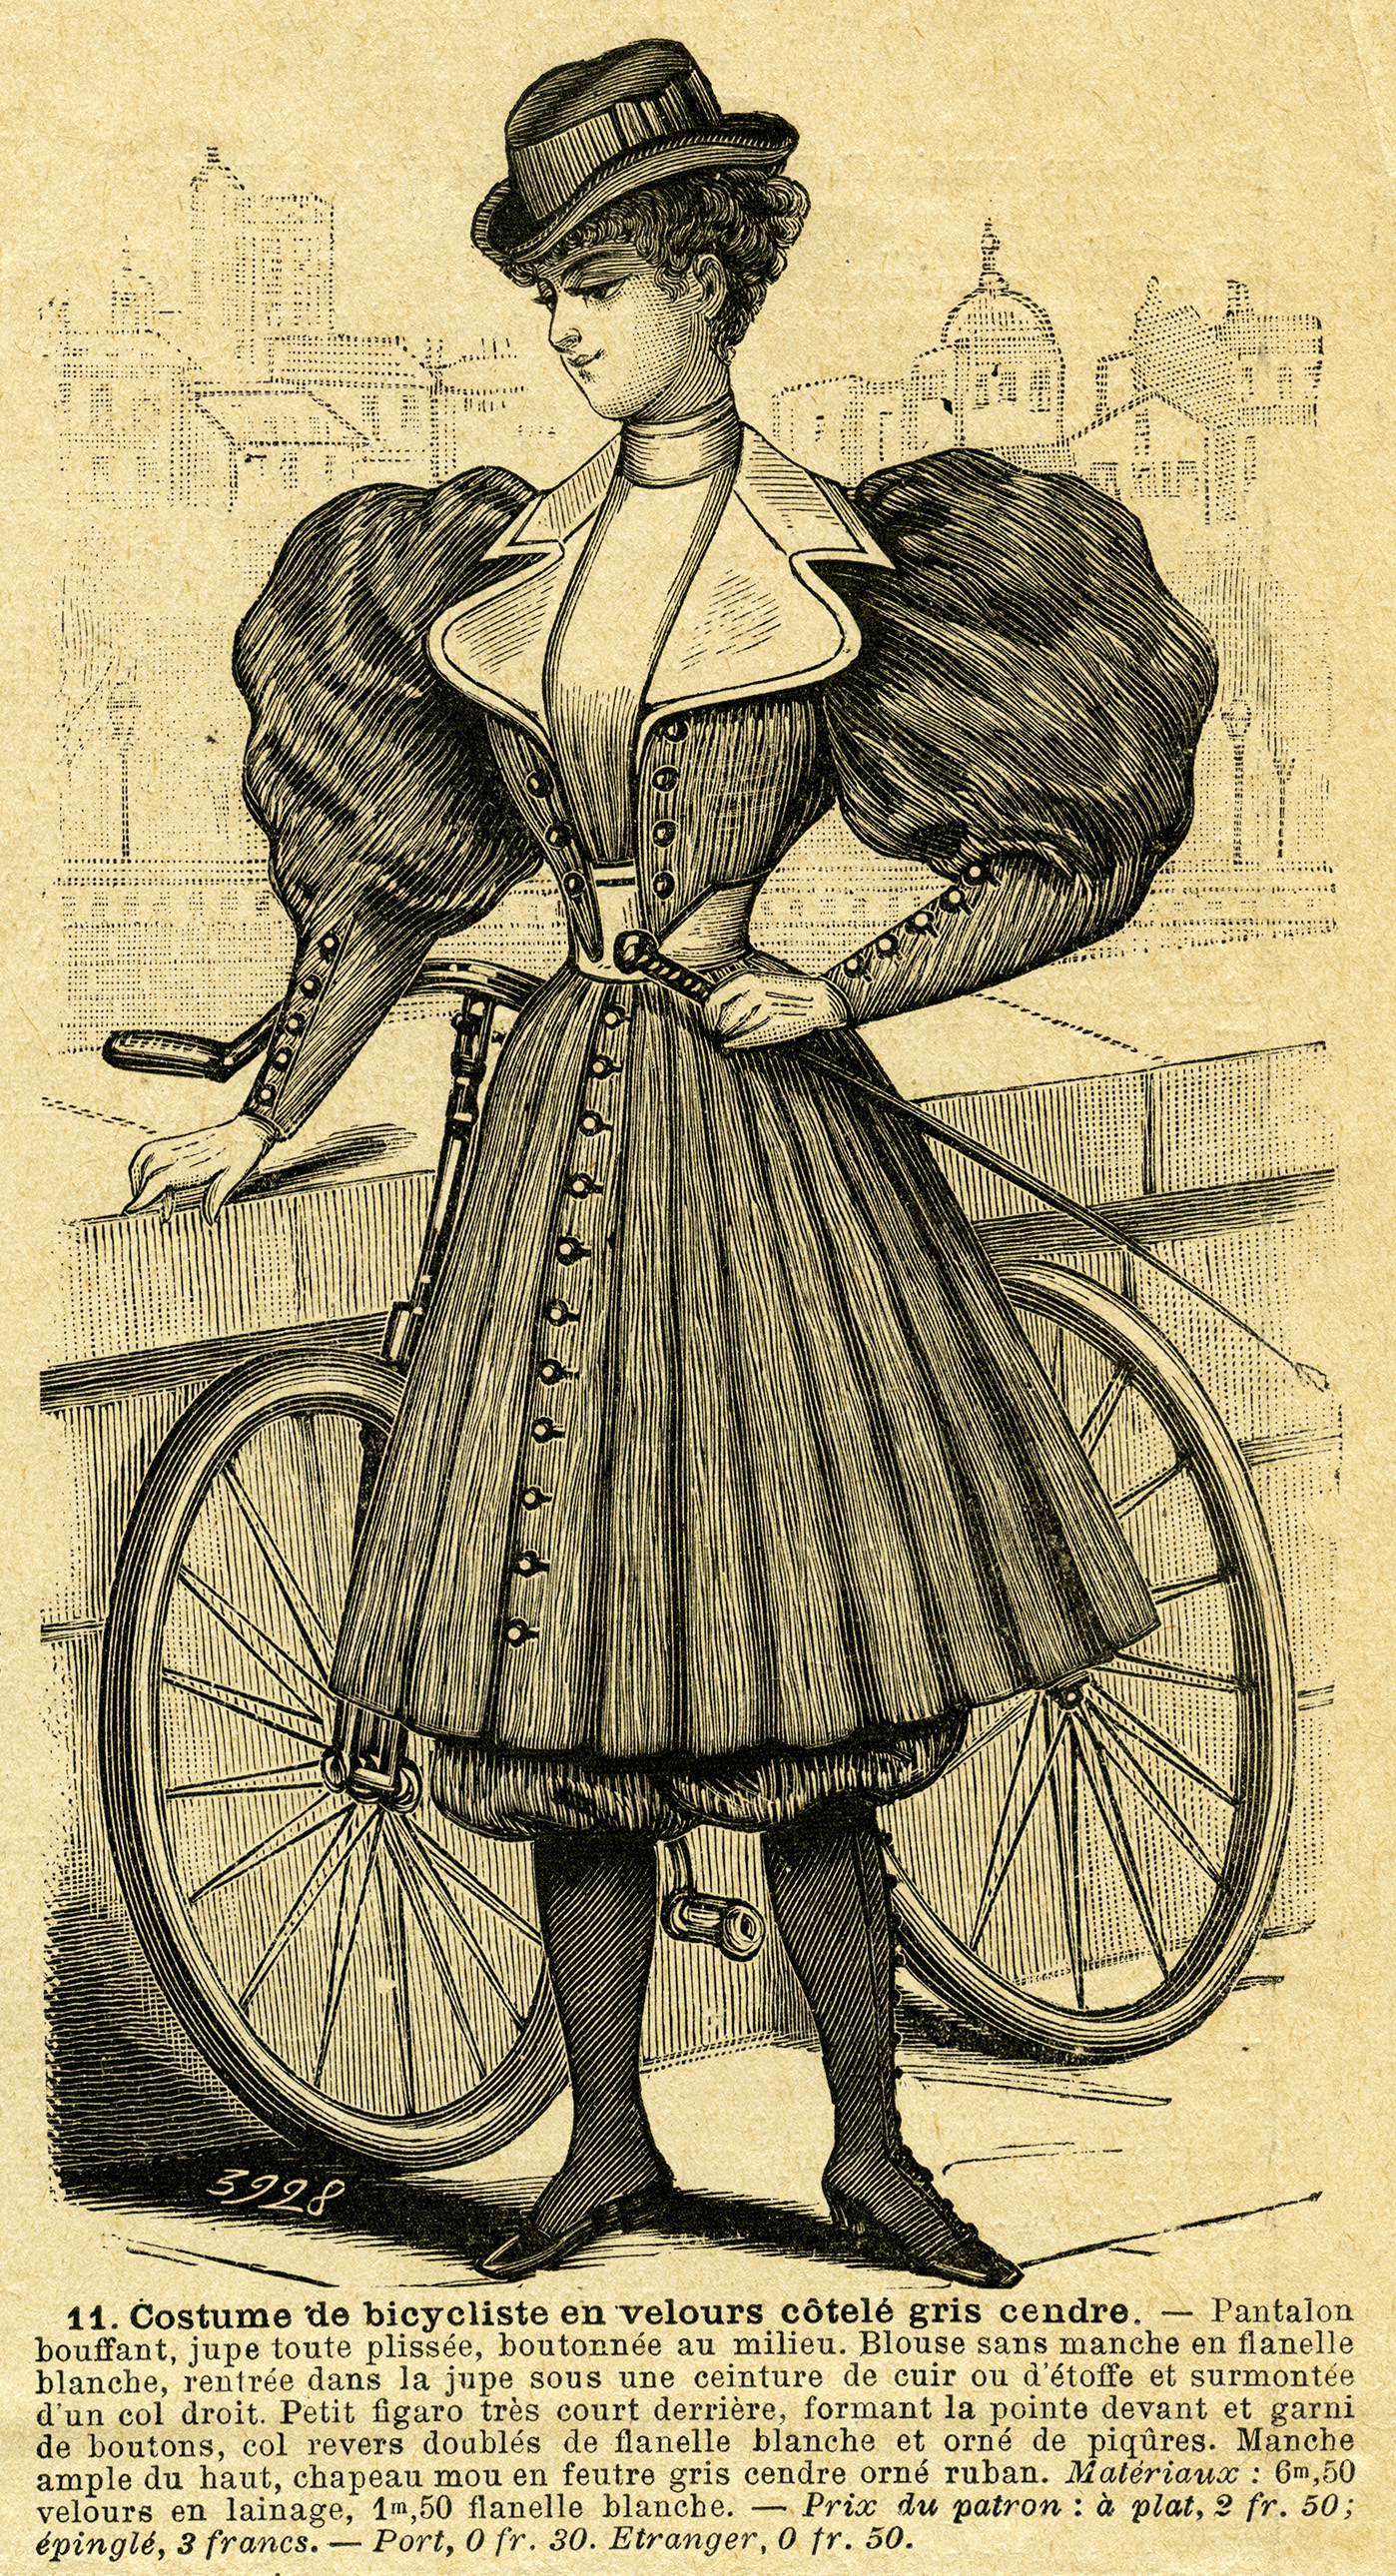 Women victorian glove clipart graphic royalty free library Vintage French Bicycle Outfit for Ladies ~ Free Magazine Ad ... graphic royalty free library